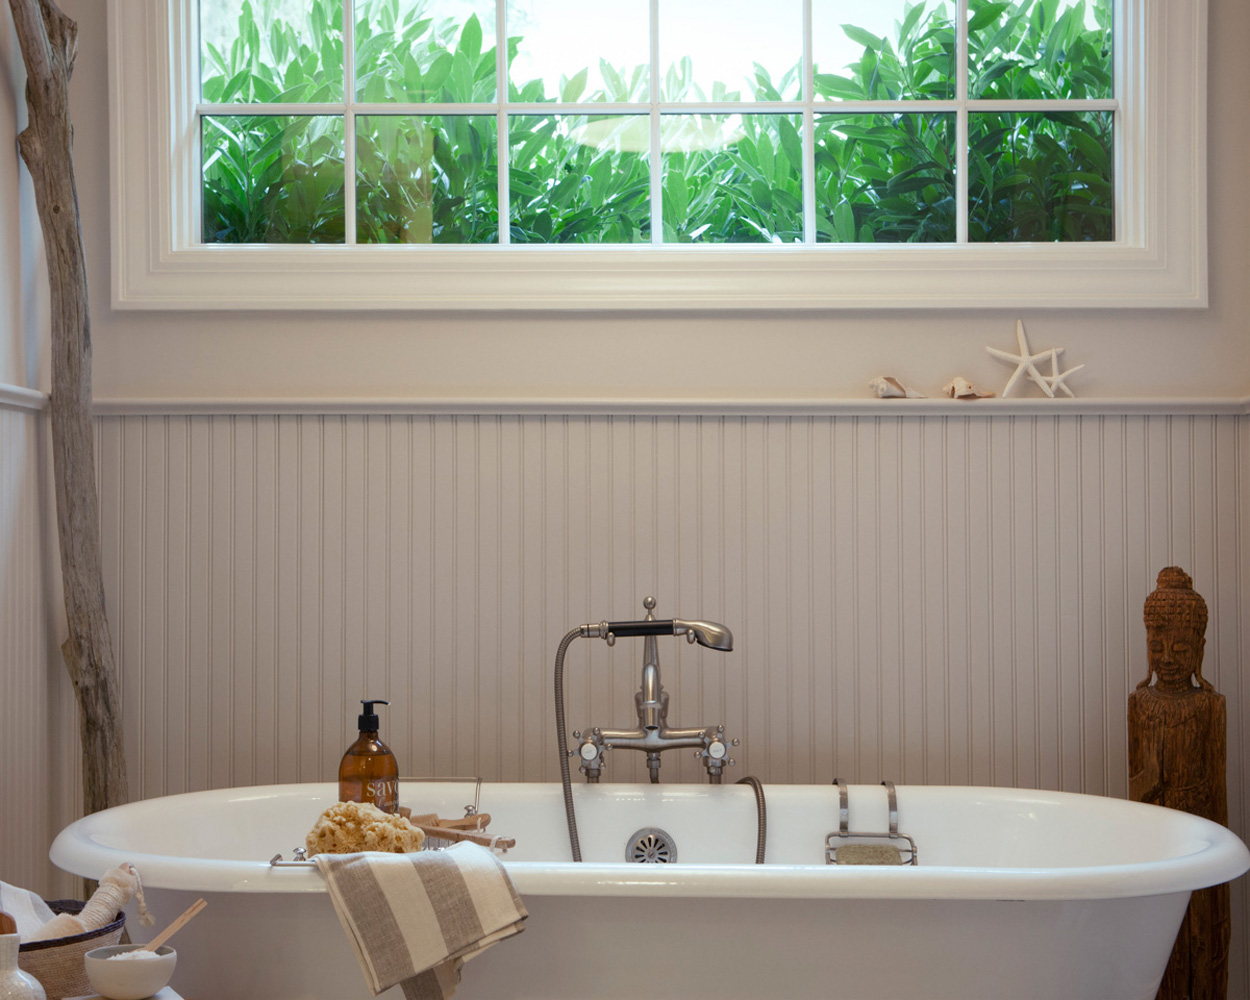 Farrin_West_Hamptons_Interior_Design_Gardiners_Bay_Summer_Home_024.jpg